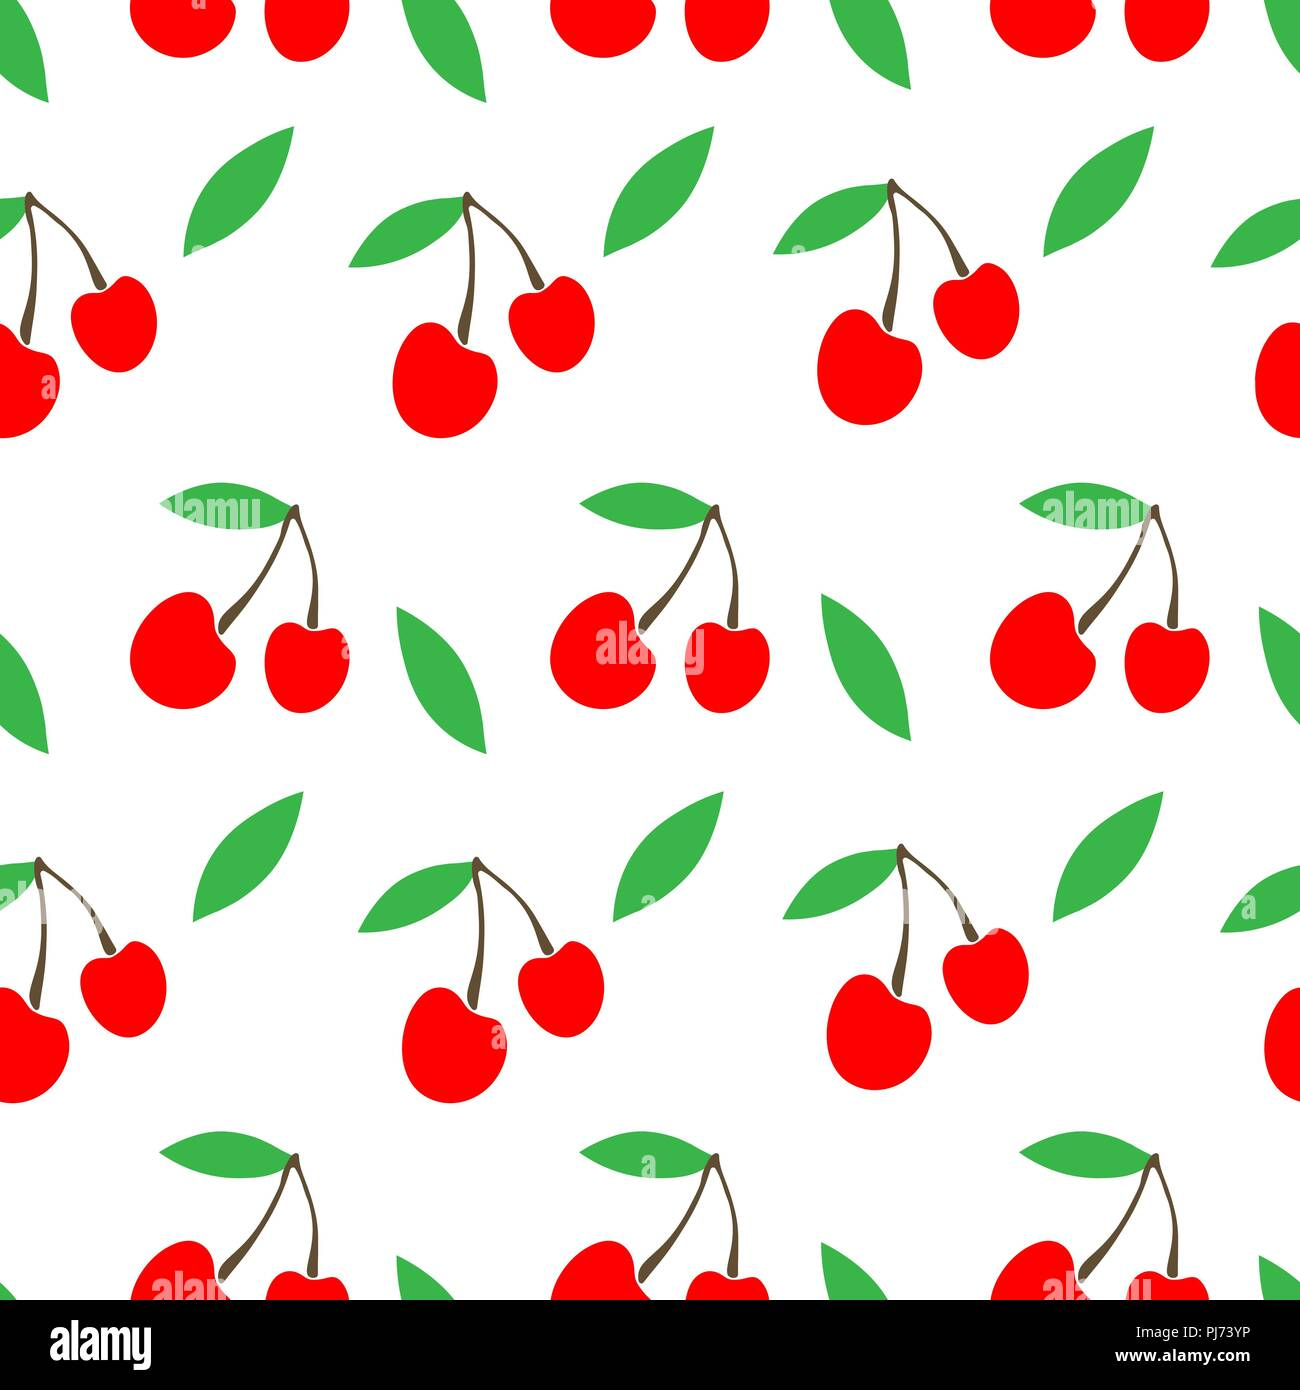 Rural Packaging Design Cherry Jam Simple Cute Seamless Vector Background Of Cherries Stock Vector Image Art Alamy,Wooden Fence Driveway Gate Designs